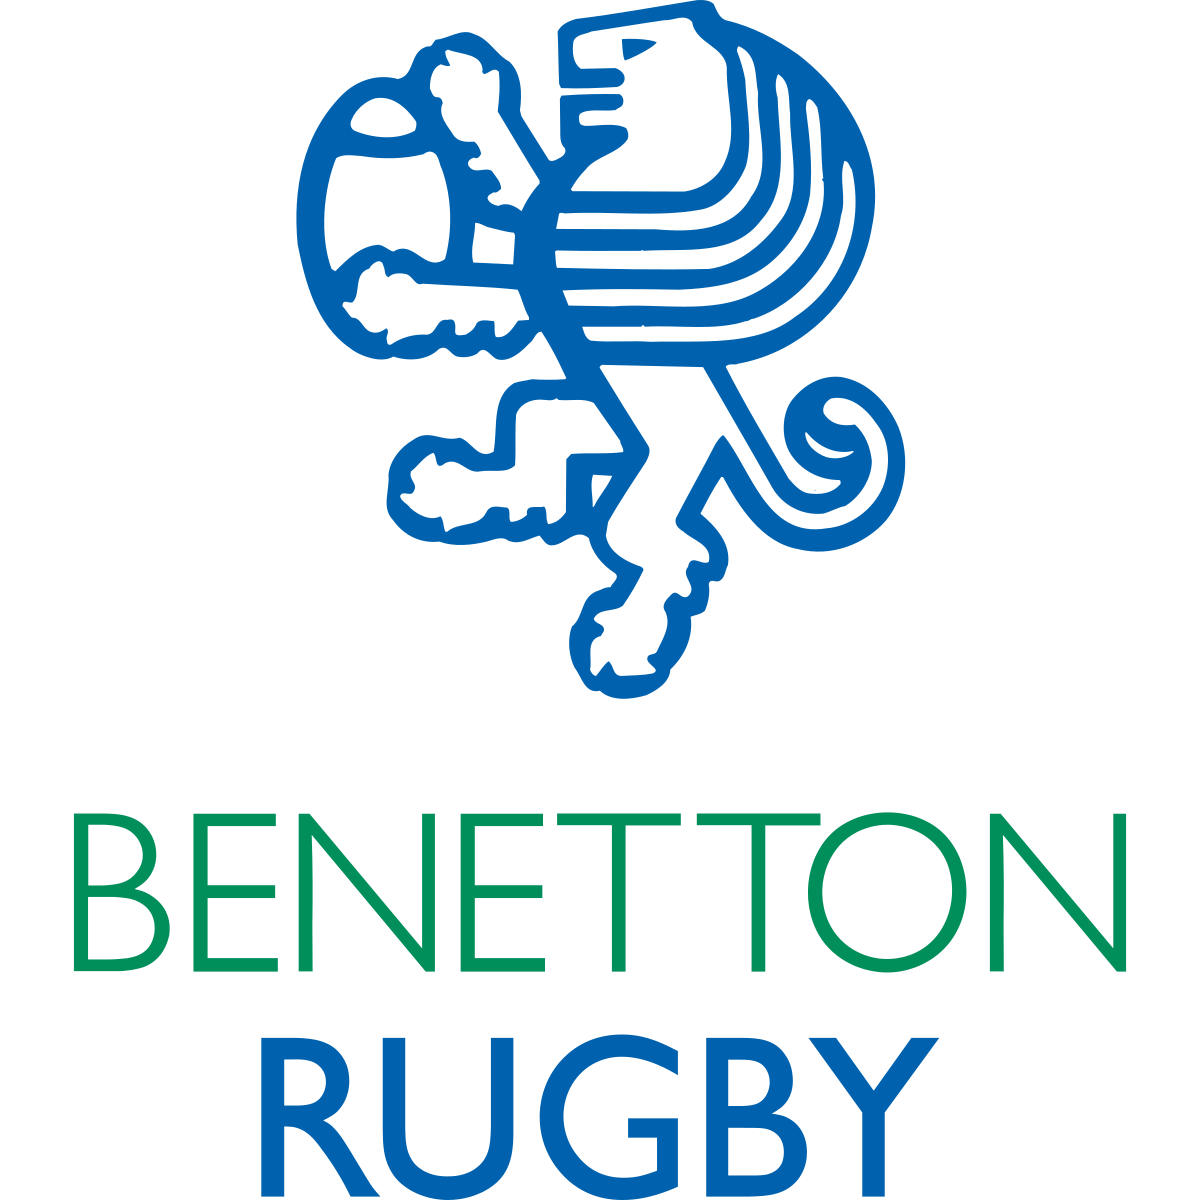 Benetton Rugby logo in blue white and green with clear background